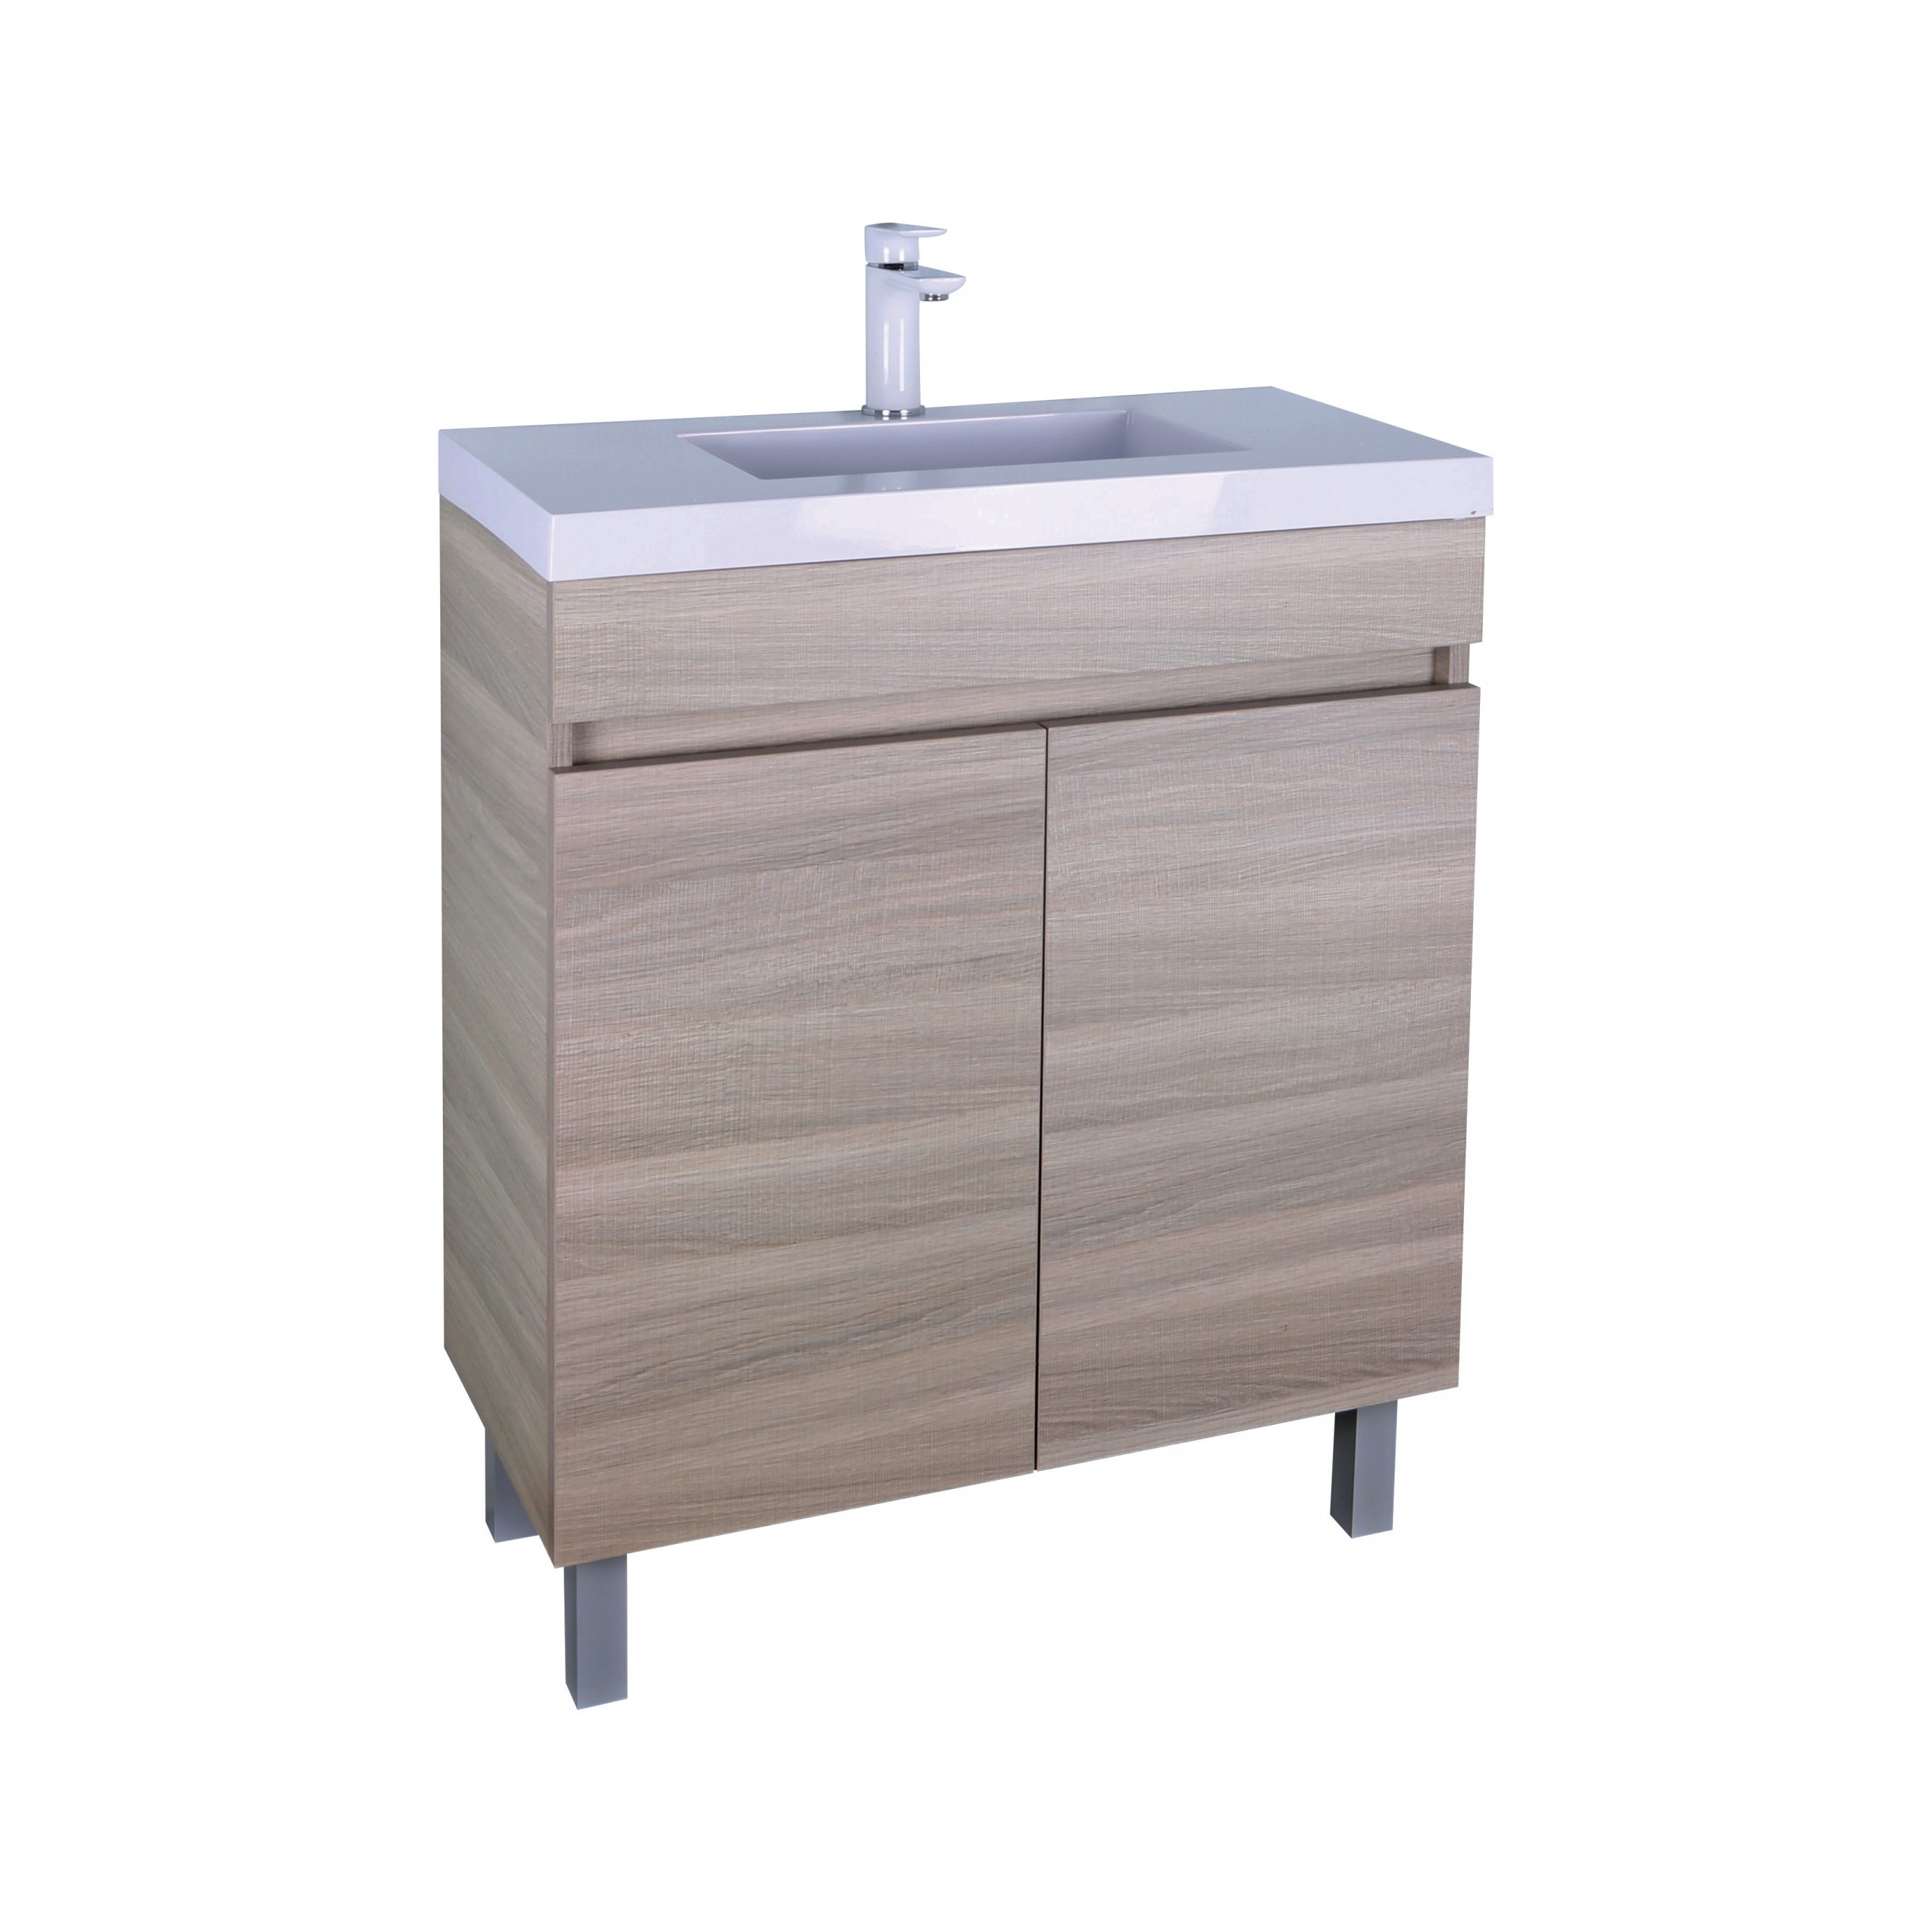 Evie Color Vanity EV73LG-OAK